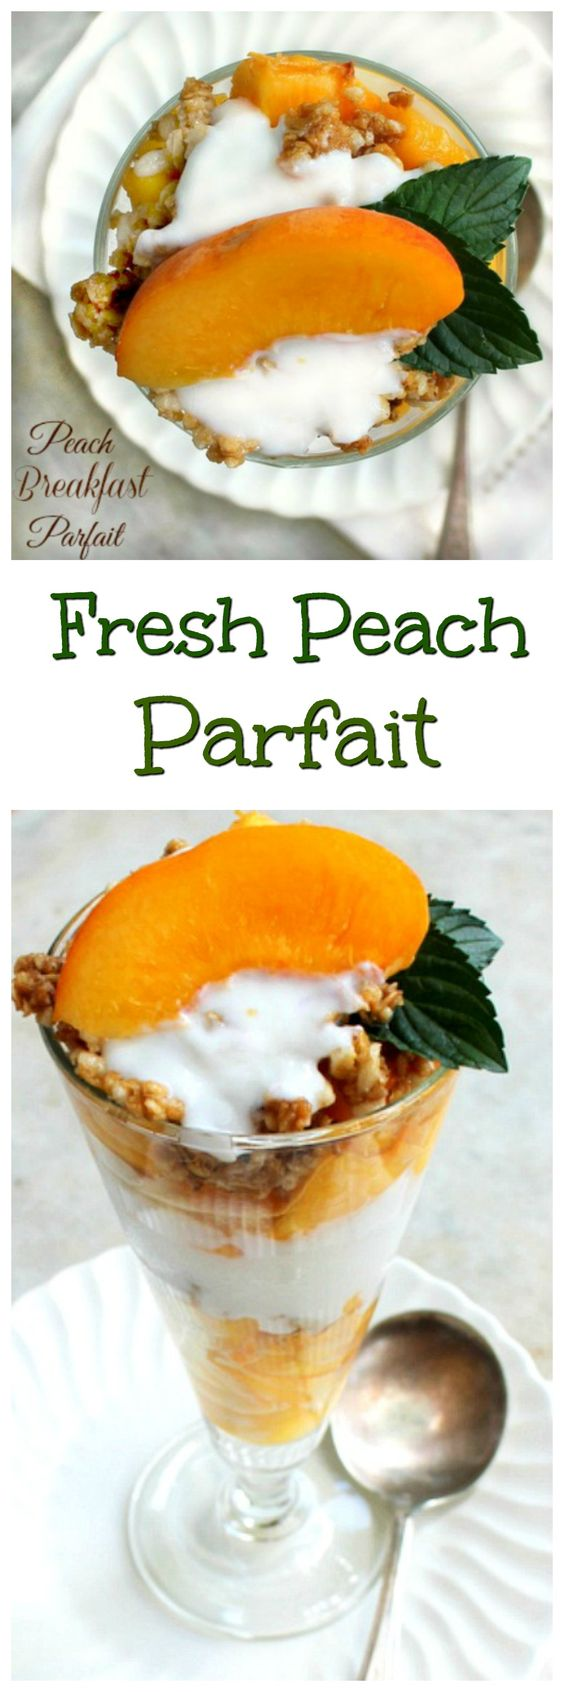 Yogurt ,fresh Peaches and granola make a delicious breakfast parfait or snack!